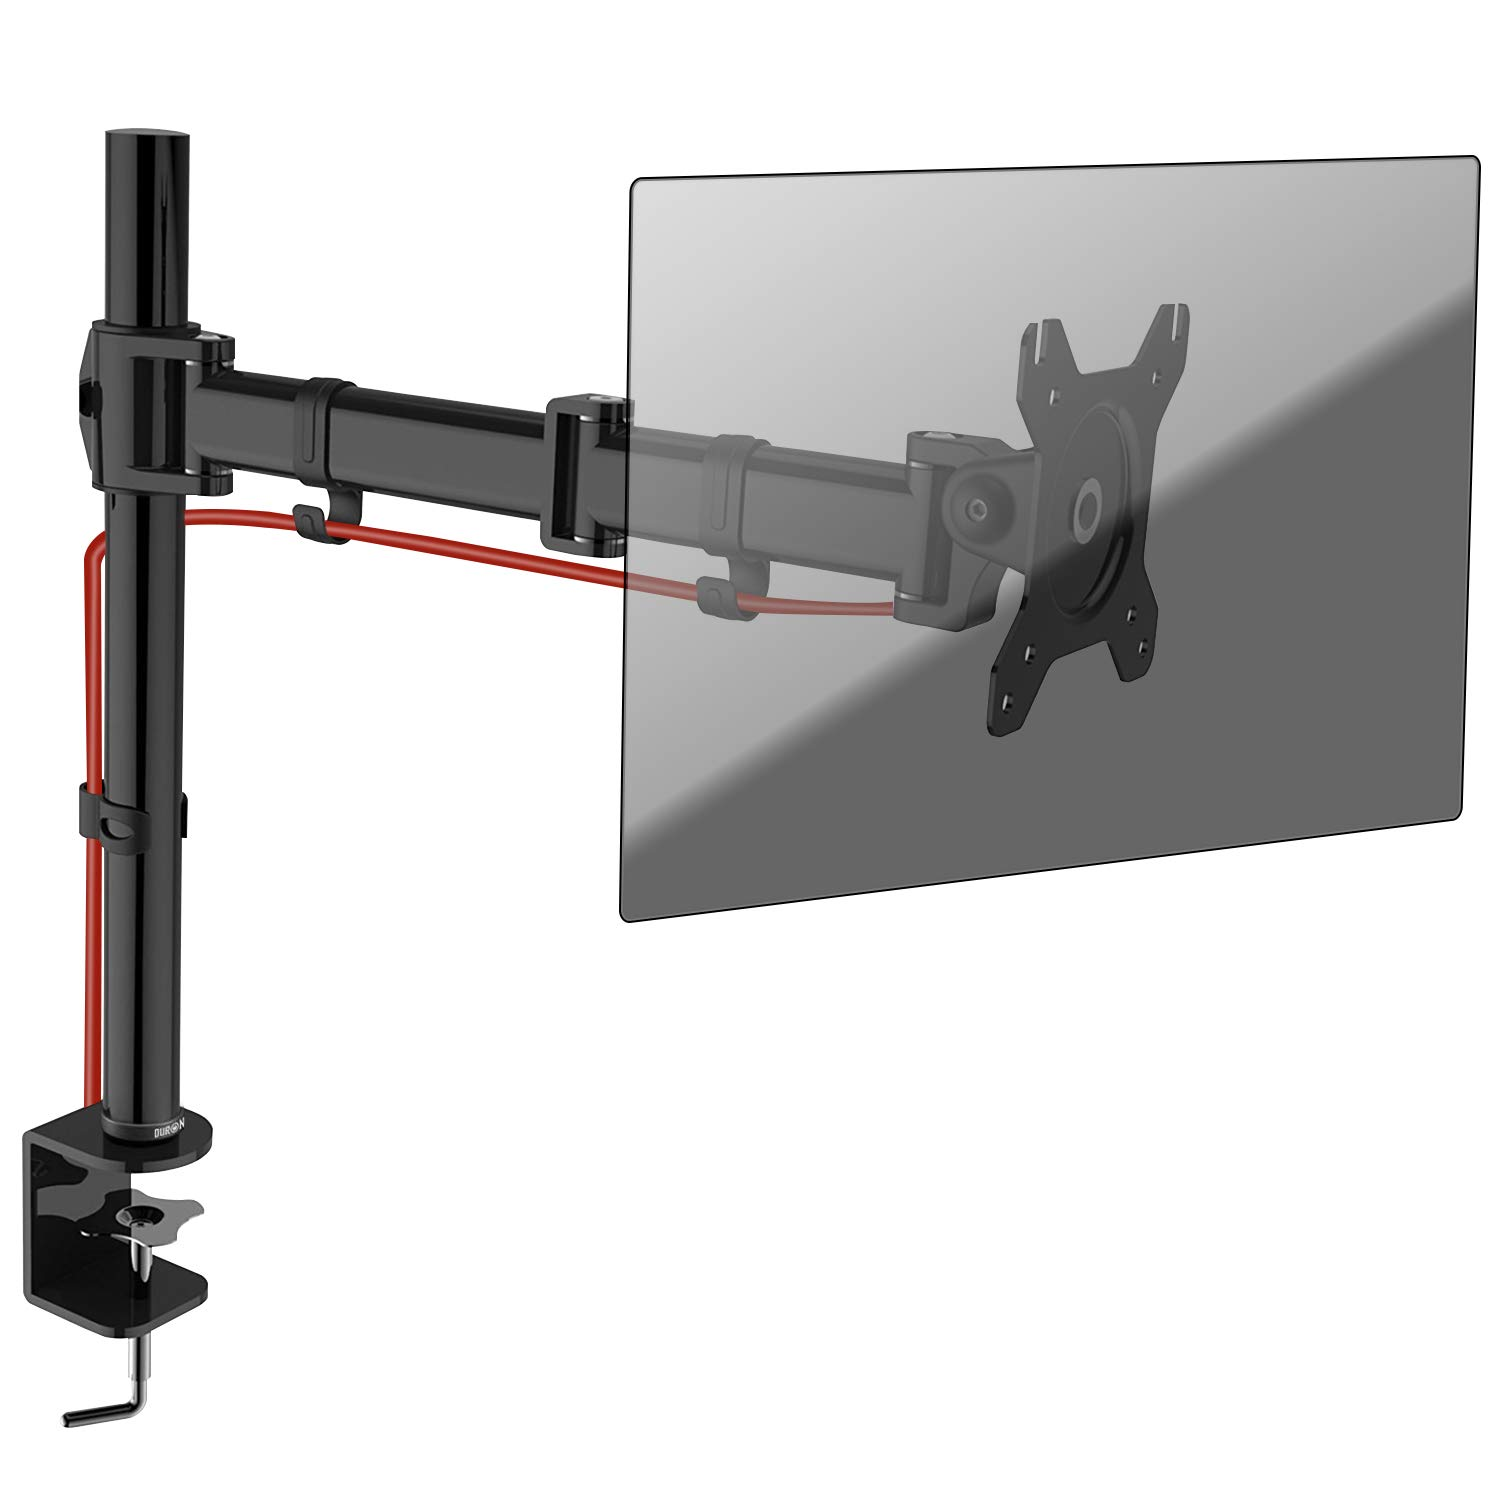 Duronic DM251X3 PC Monitor Arm Stand Desk Mount Bracket Clamp Single LCD | LED |13